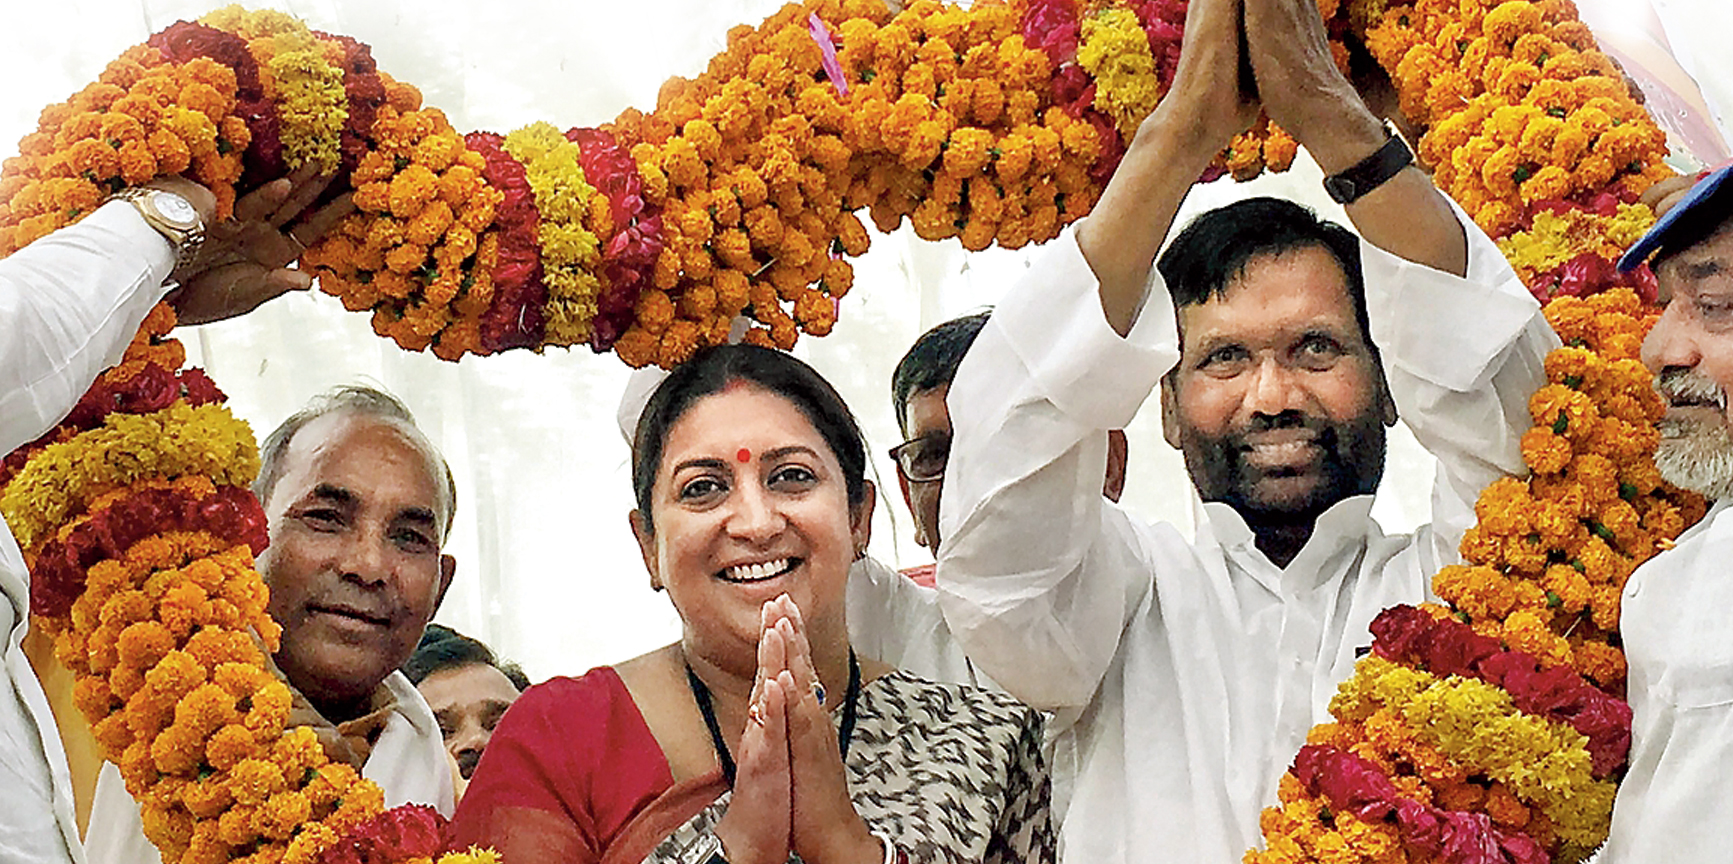 BJP candidate Smriti Irani at a rally in Amethi on April 28.